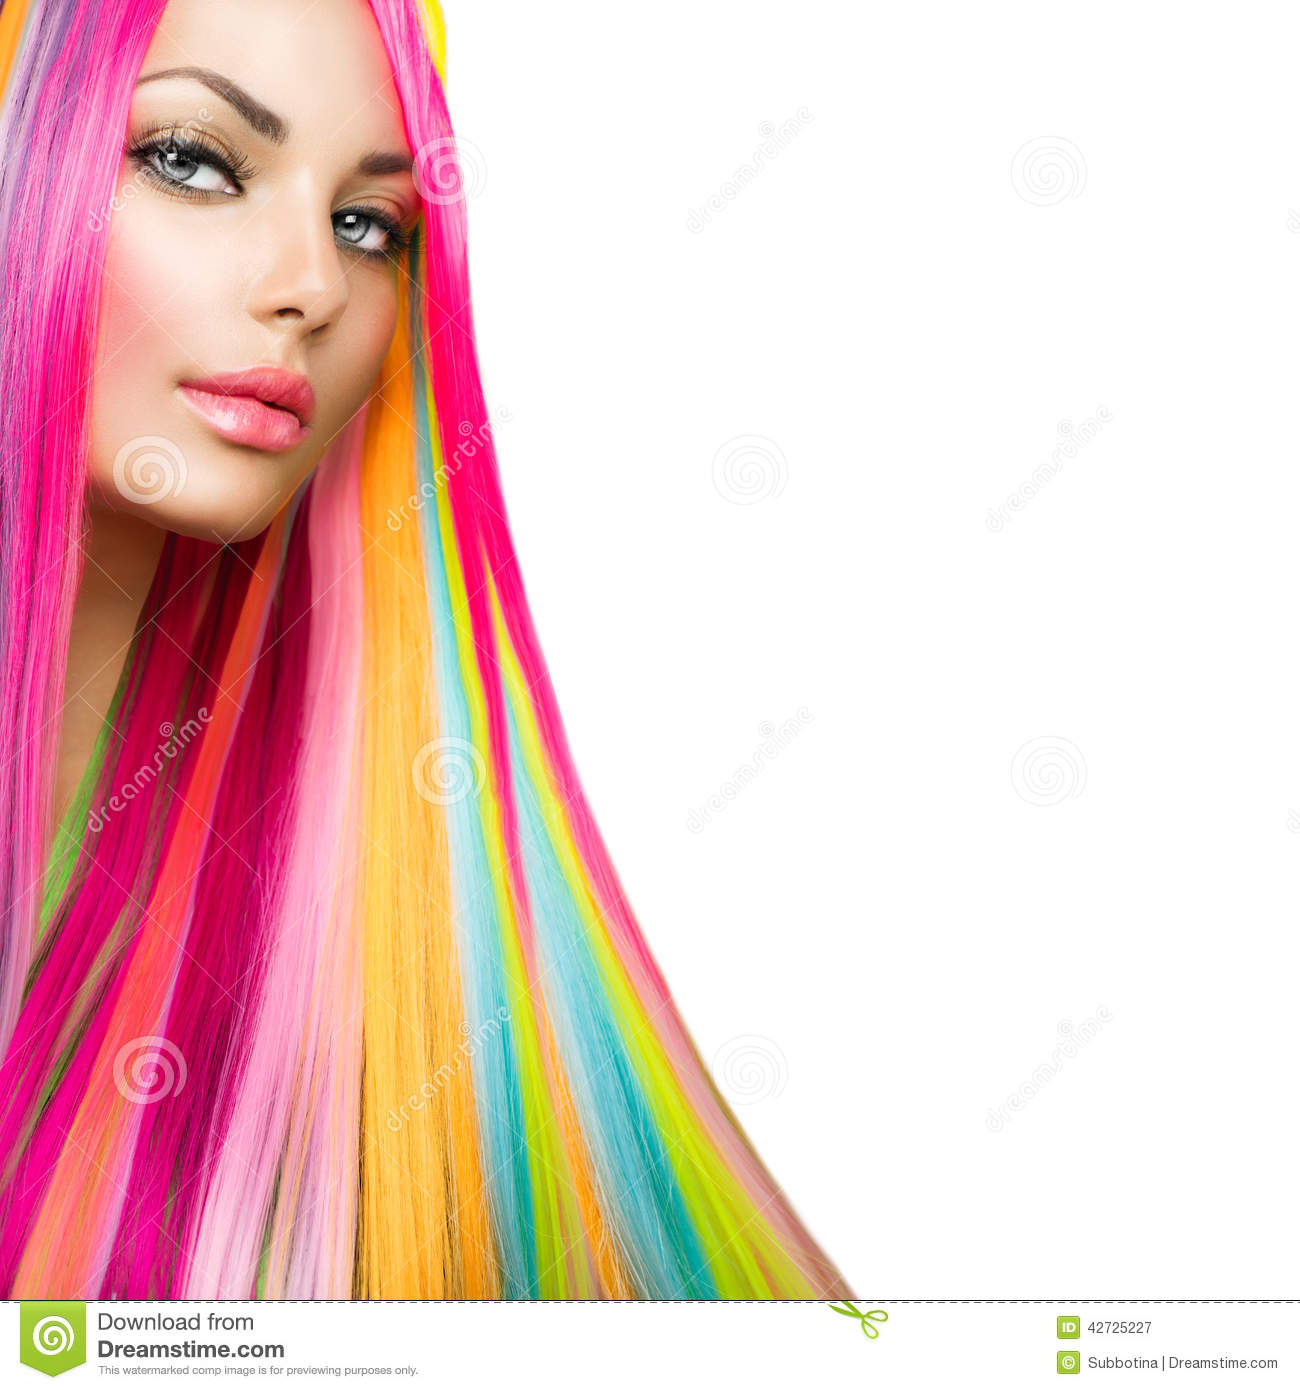 Beauty Model Girl with Colorful Hair and Makeup